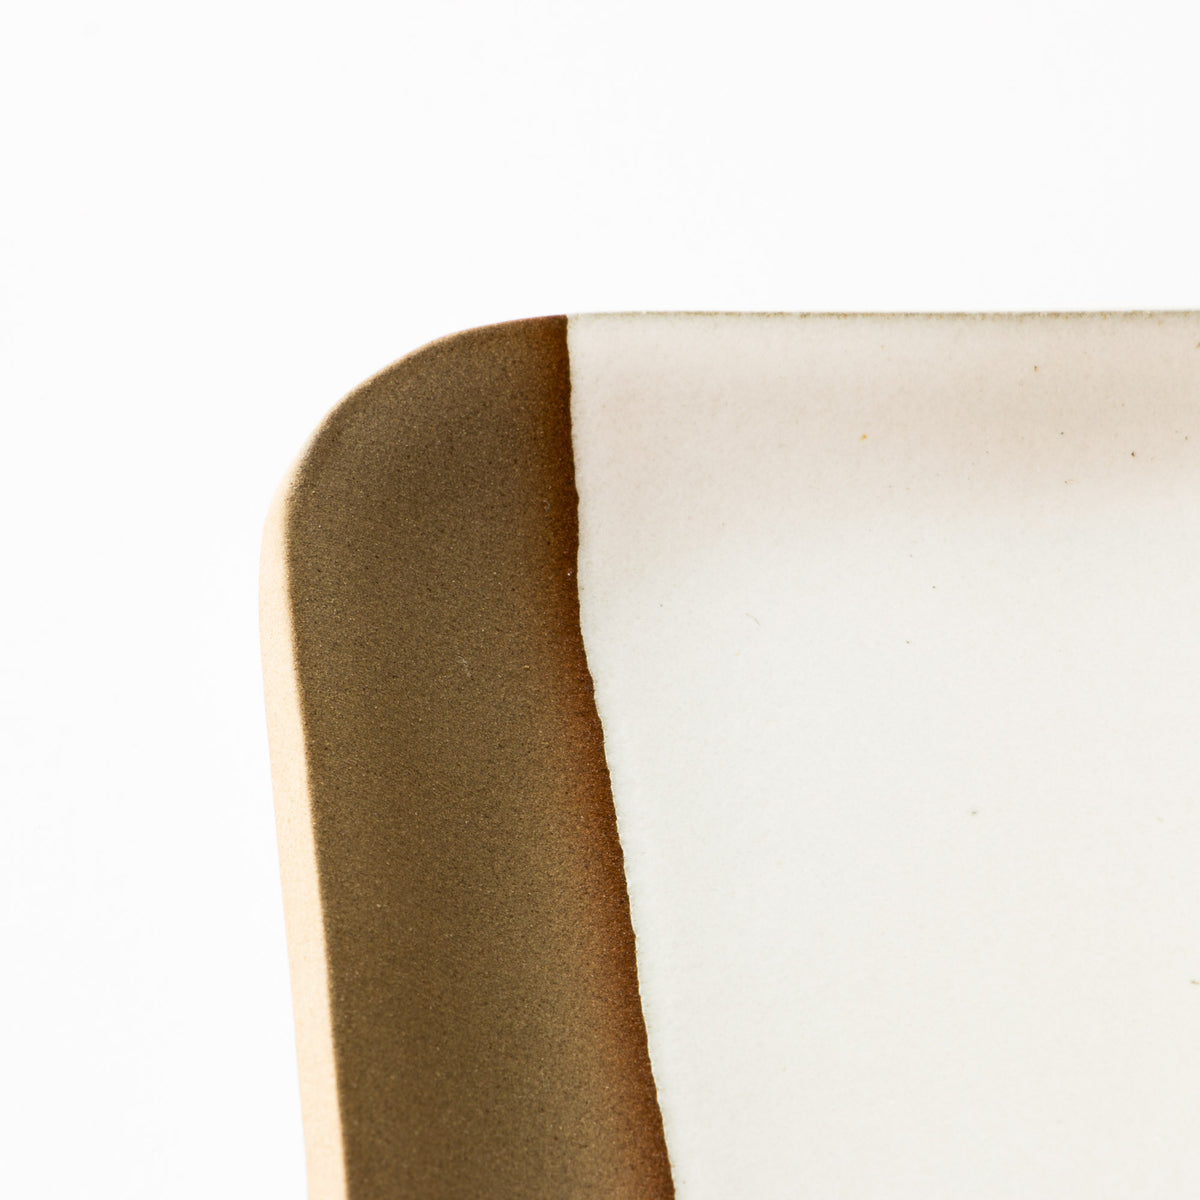 Detail - Handmade Ceramic Small Rectangular Serving Board - Chic & Basta